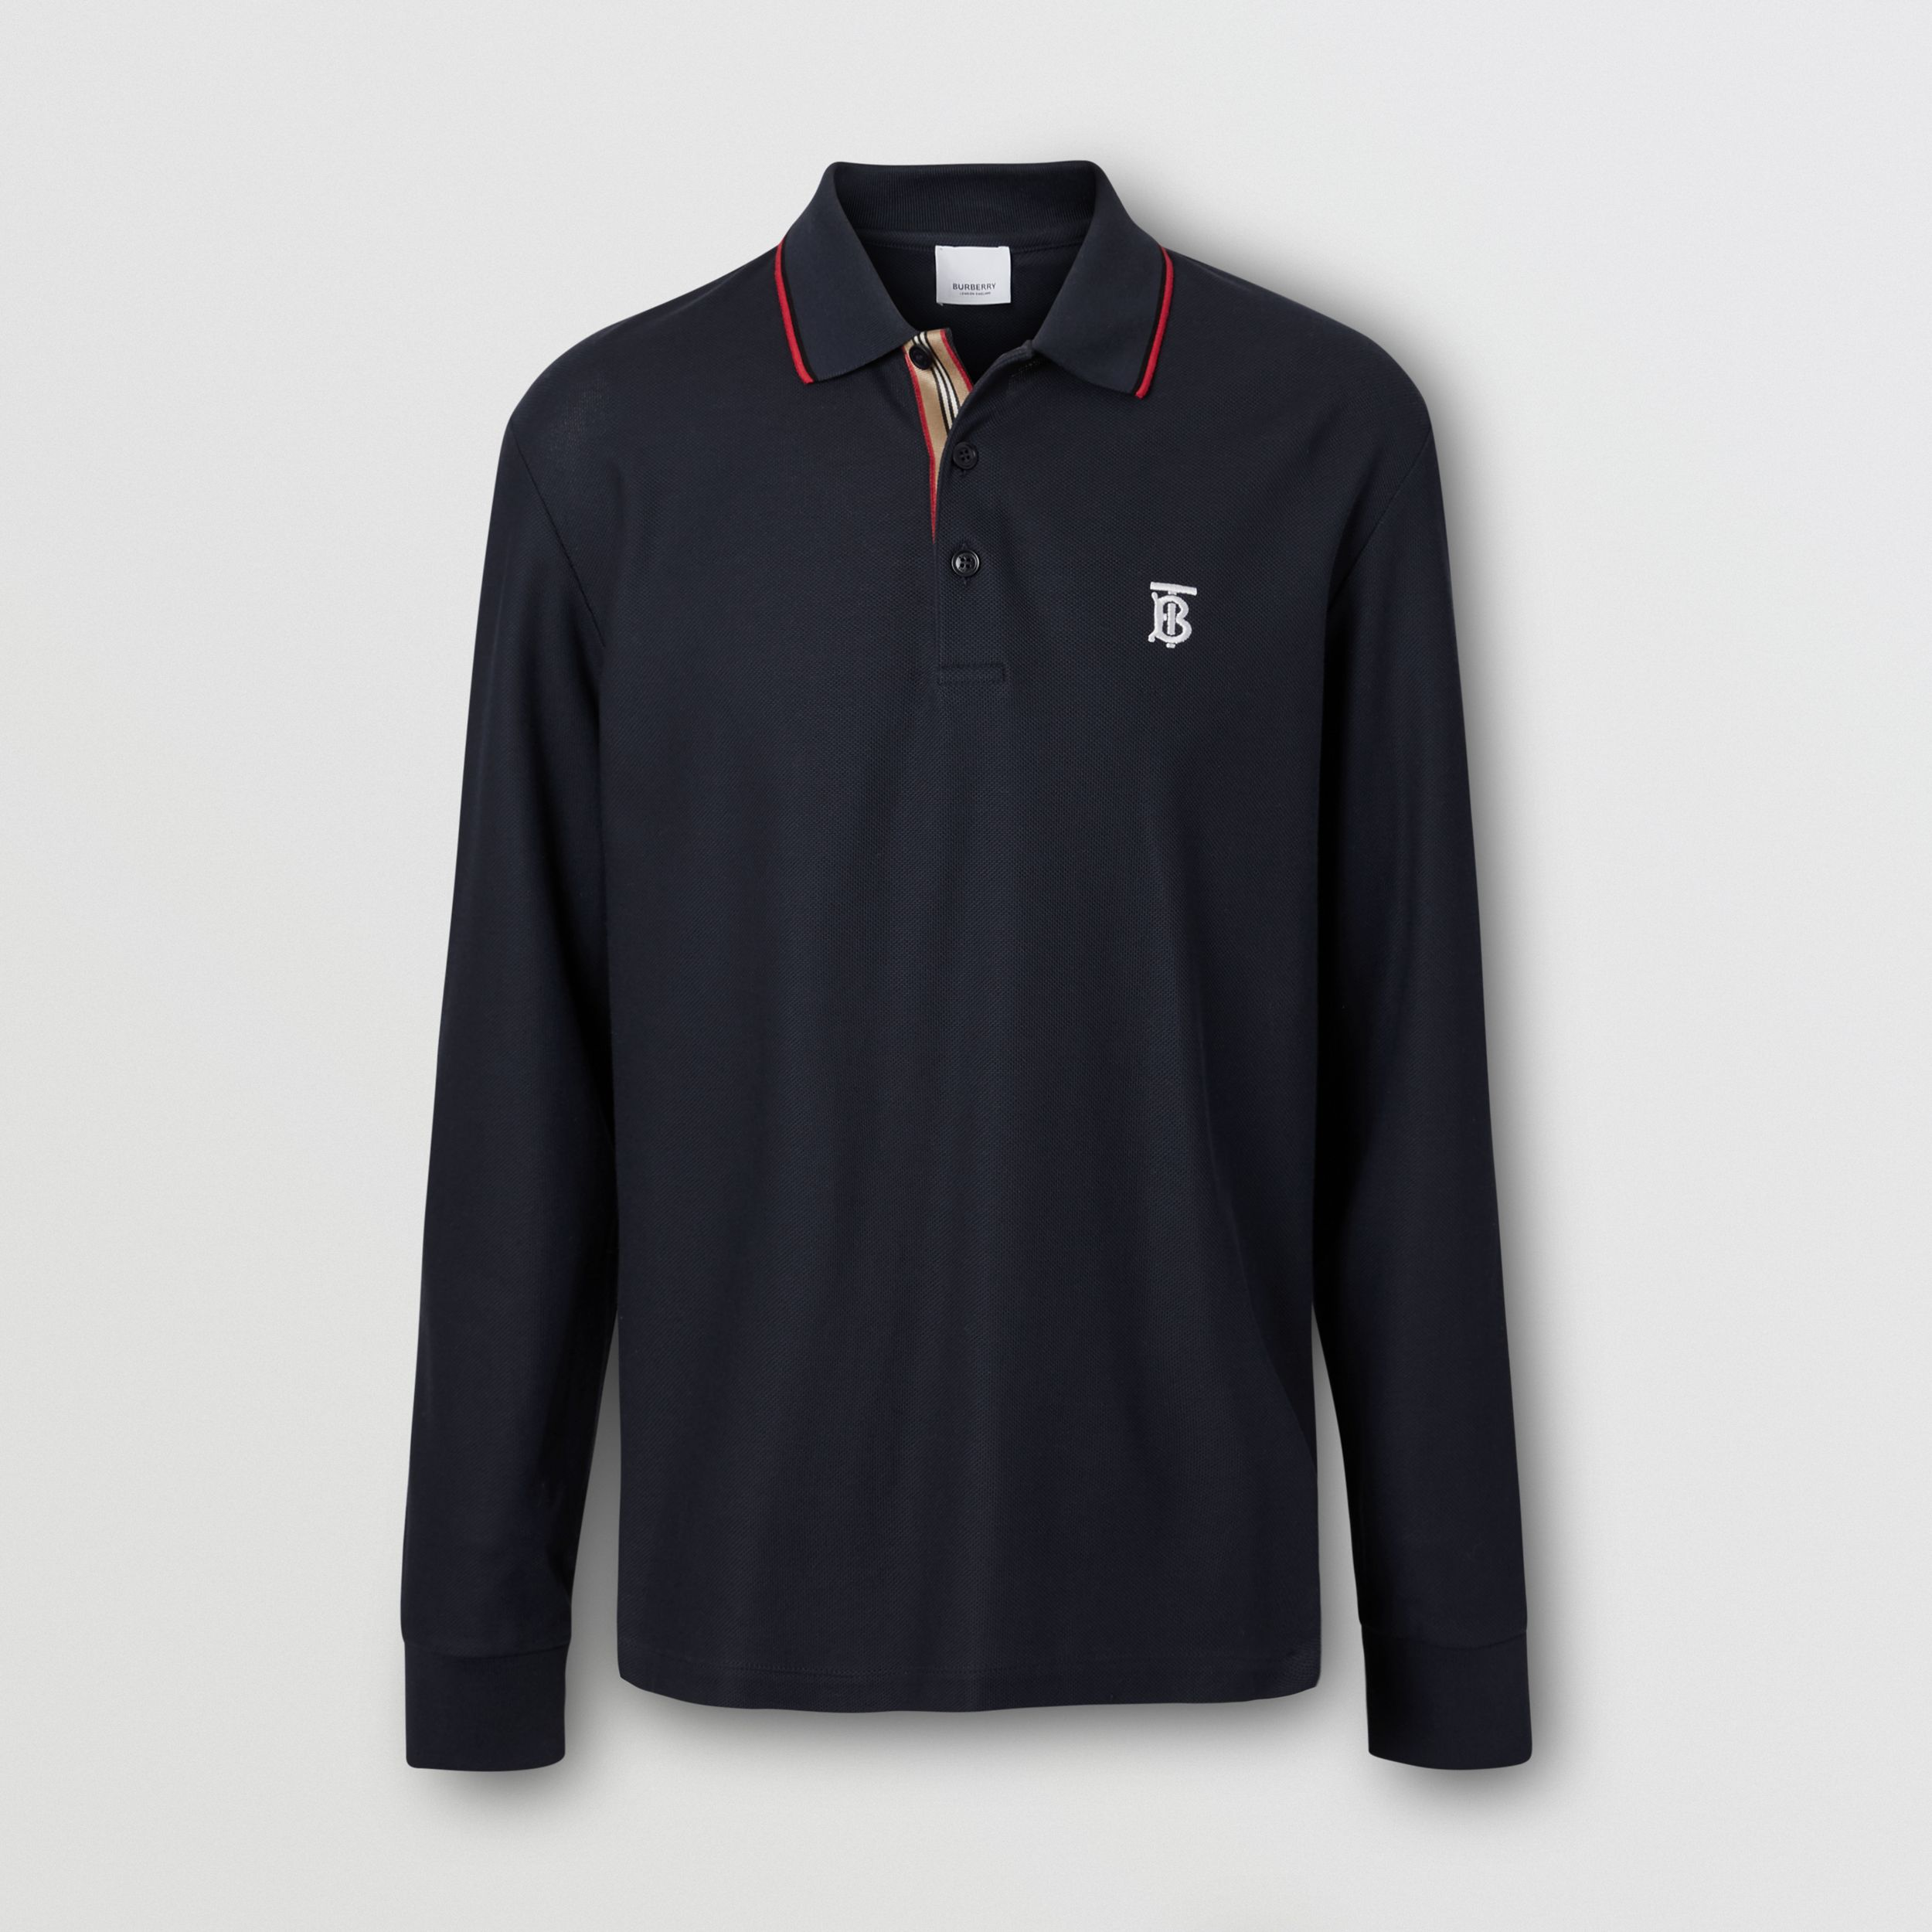 Long-sleeve Monogram Motif Cotton Piqué Polo Shirt in Navy - Men | Burberry - 4